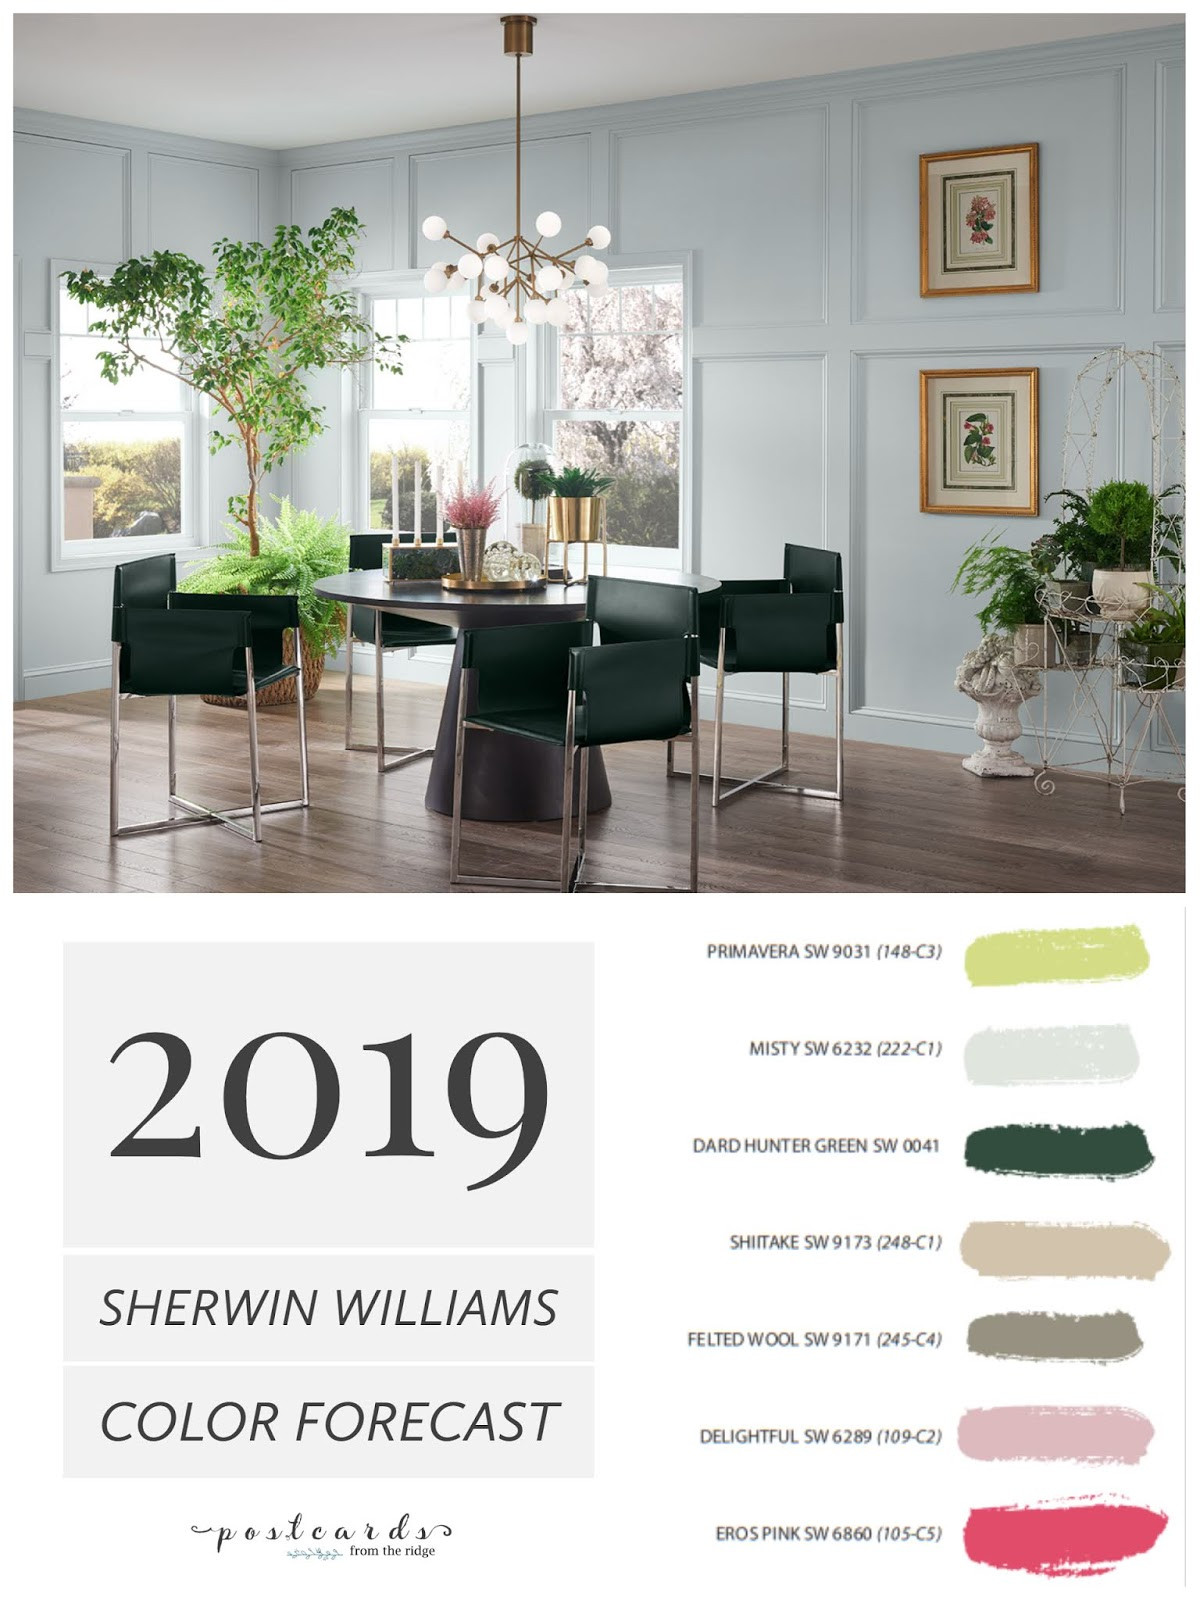 Best ideas about Paint Colors 2019 . Save or Pin 2019 Paint Color Forecast from Sherwin Williams Now.